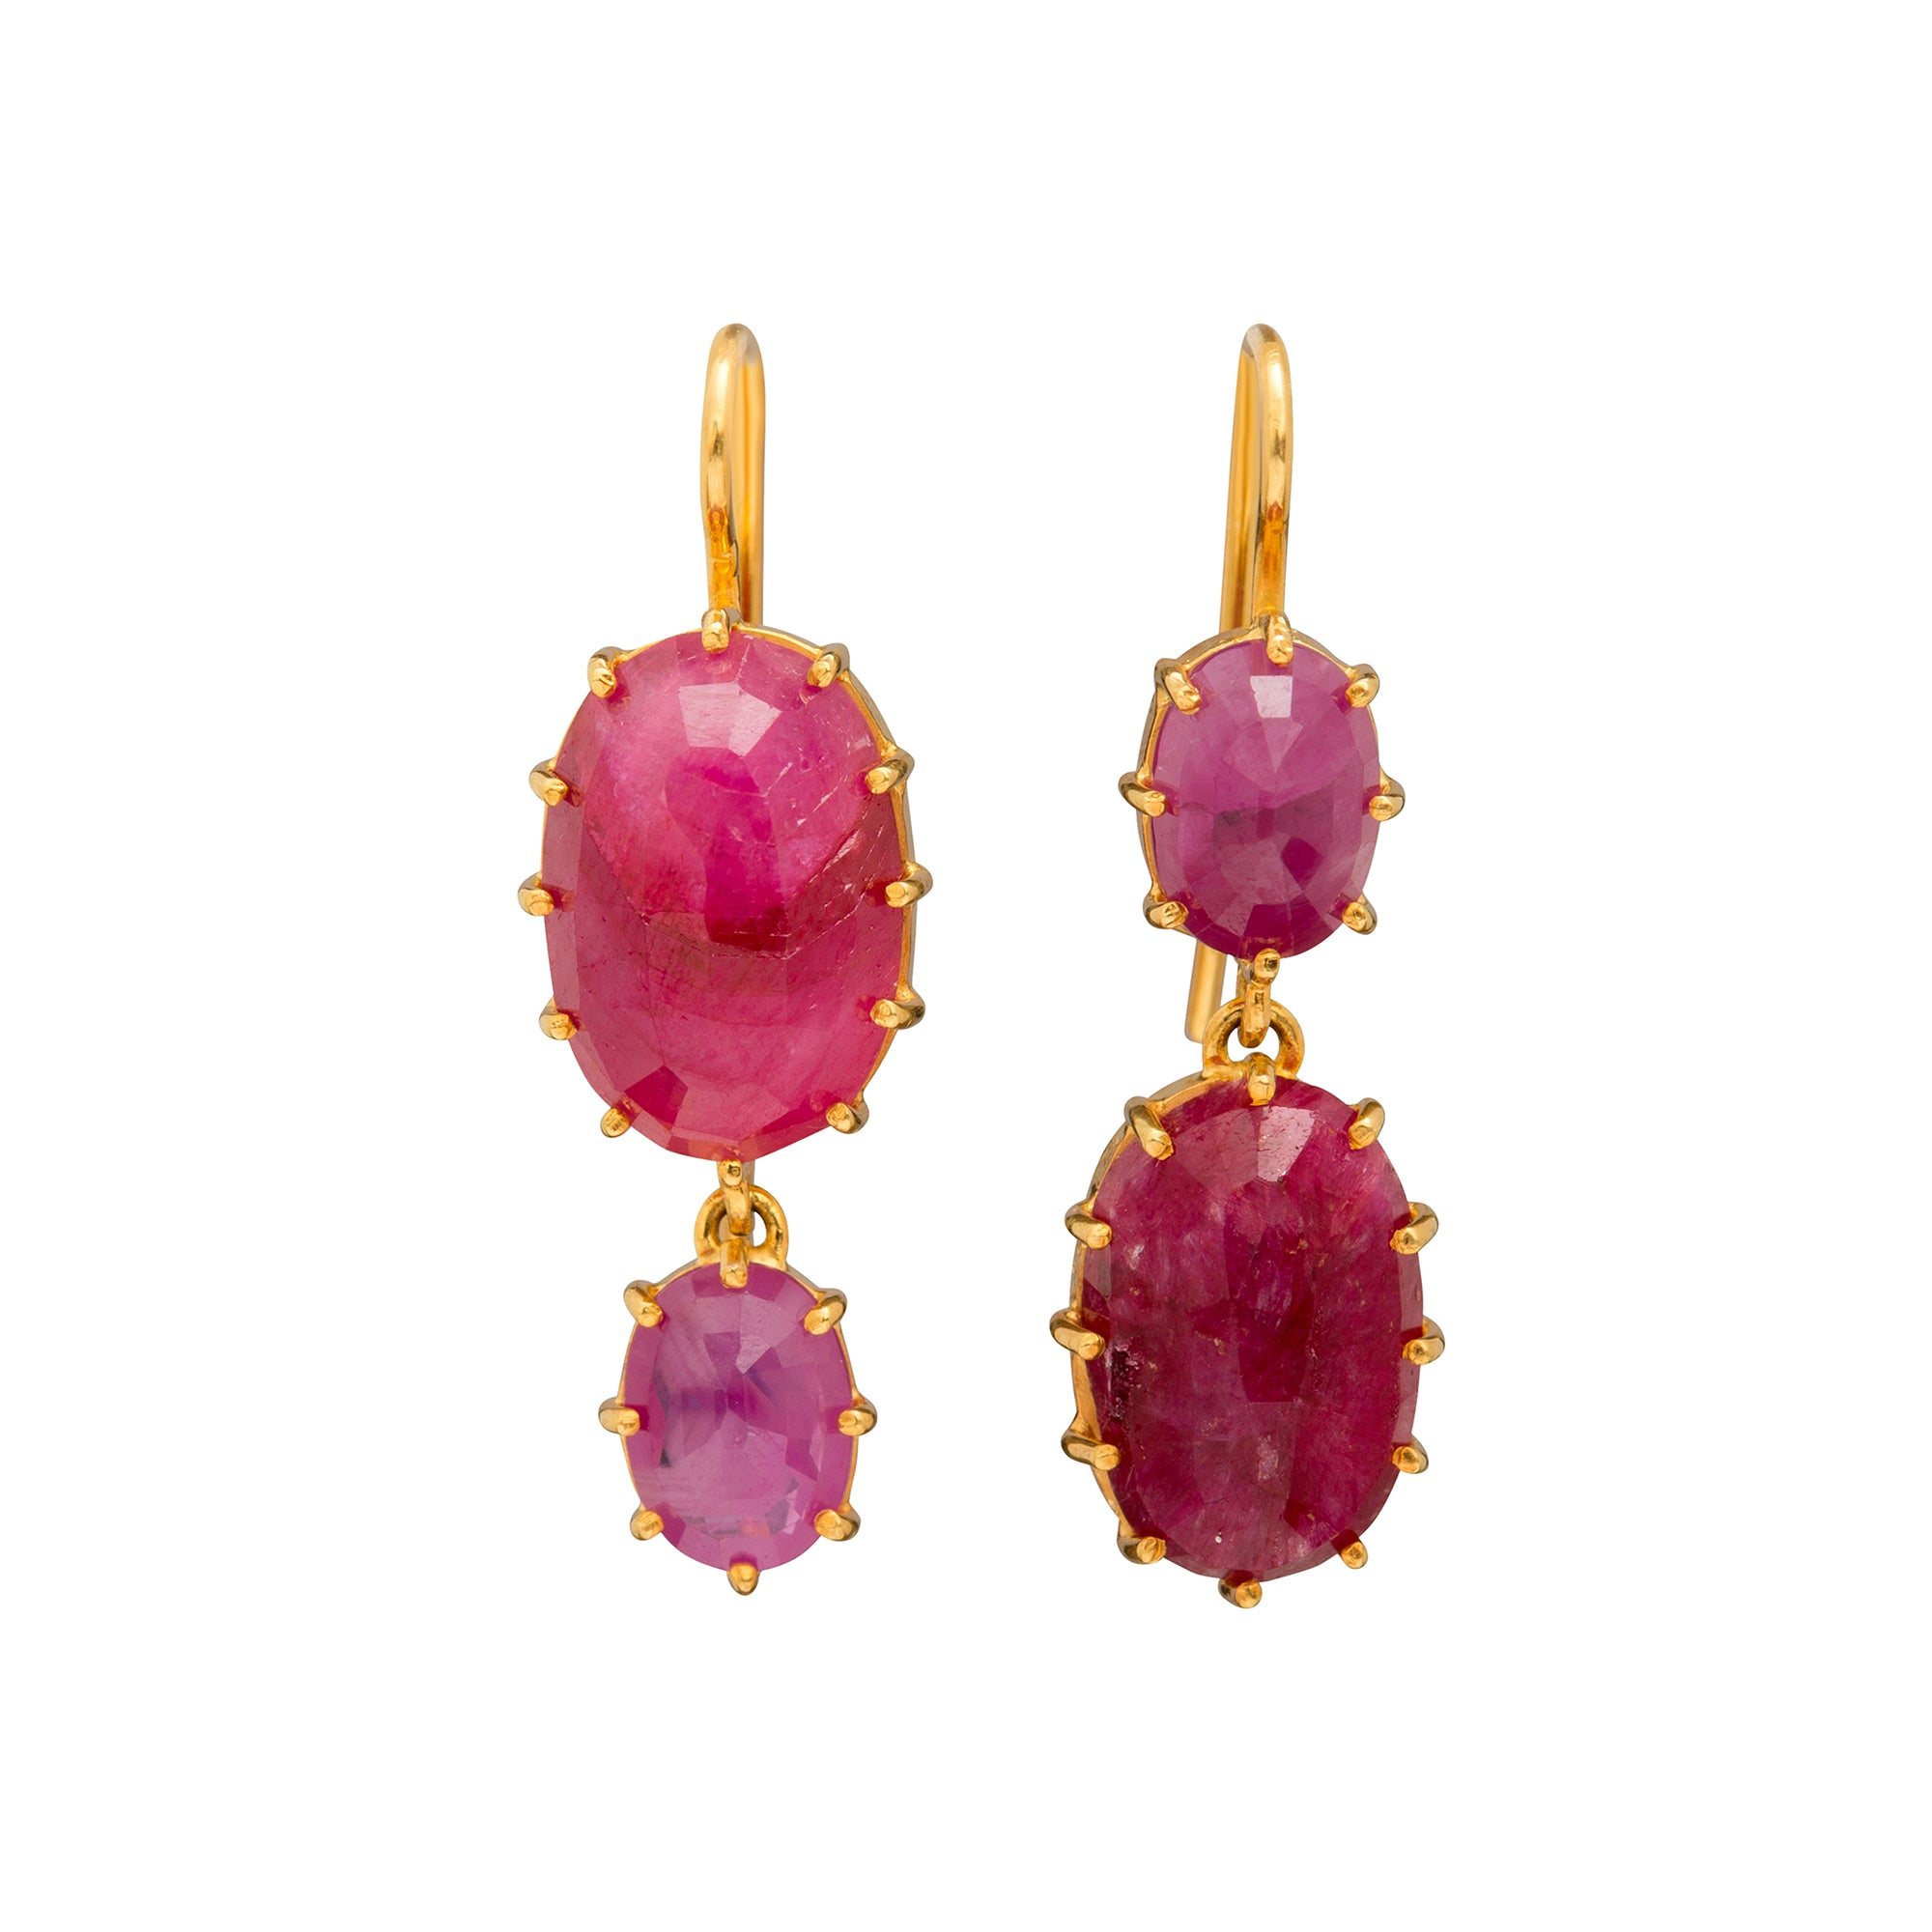 Natural Ruby Earrings by Renee Lewis for Broken English Jewelry